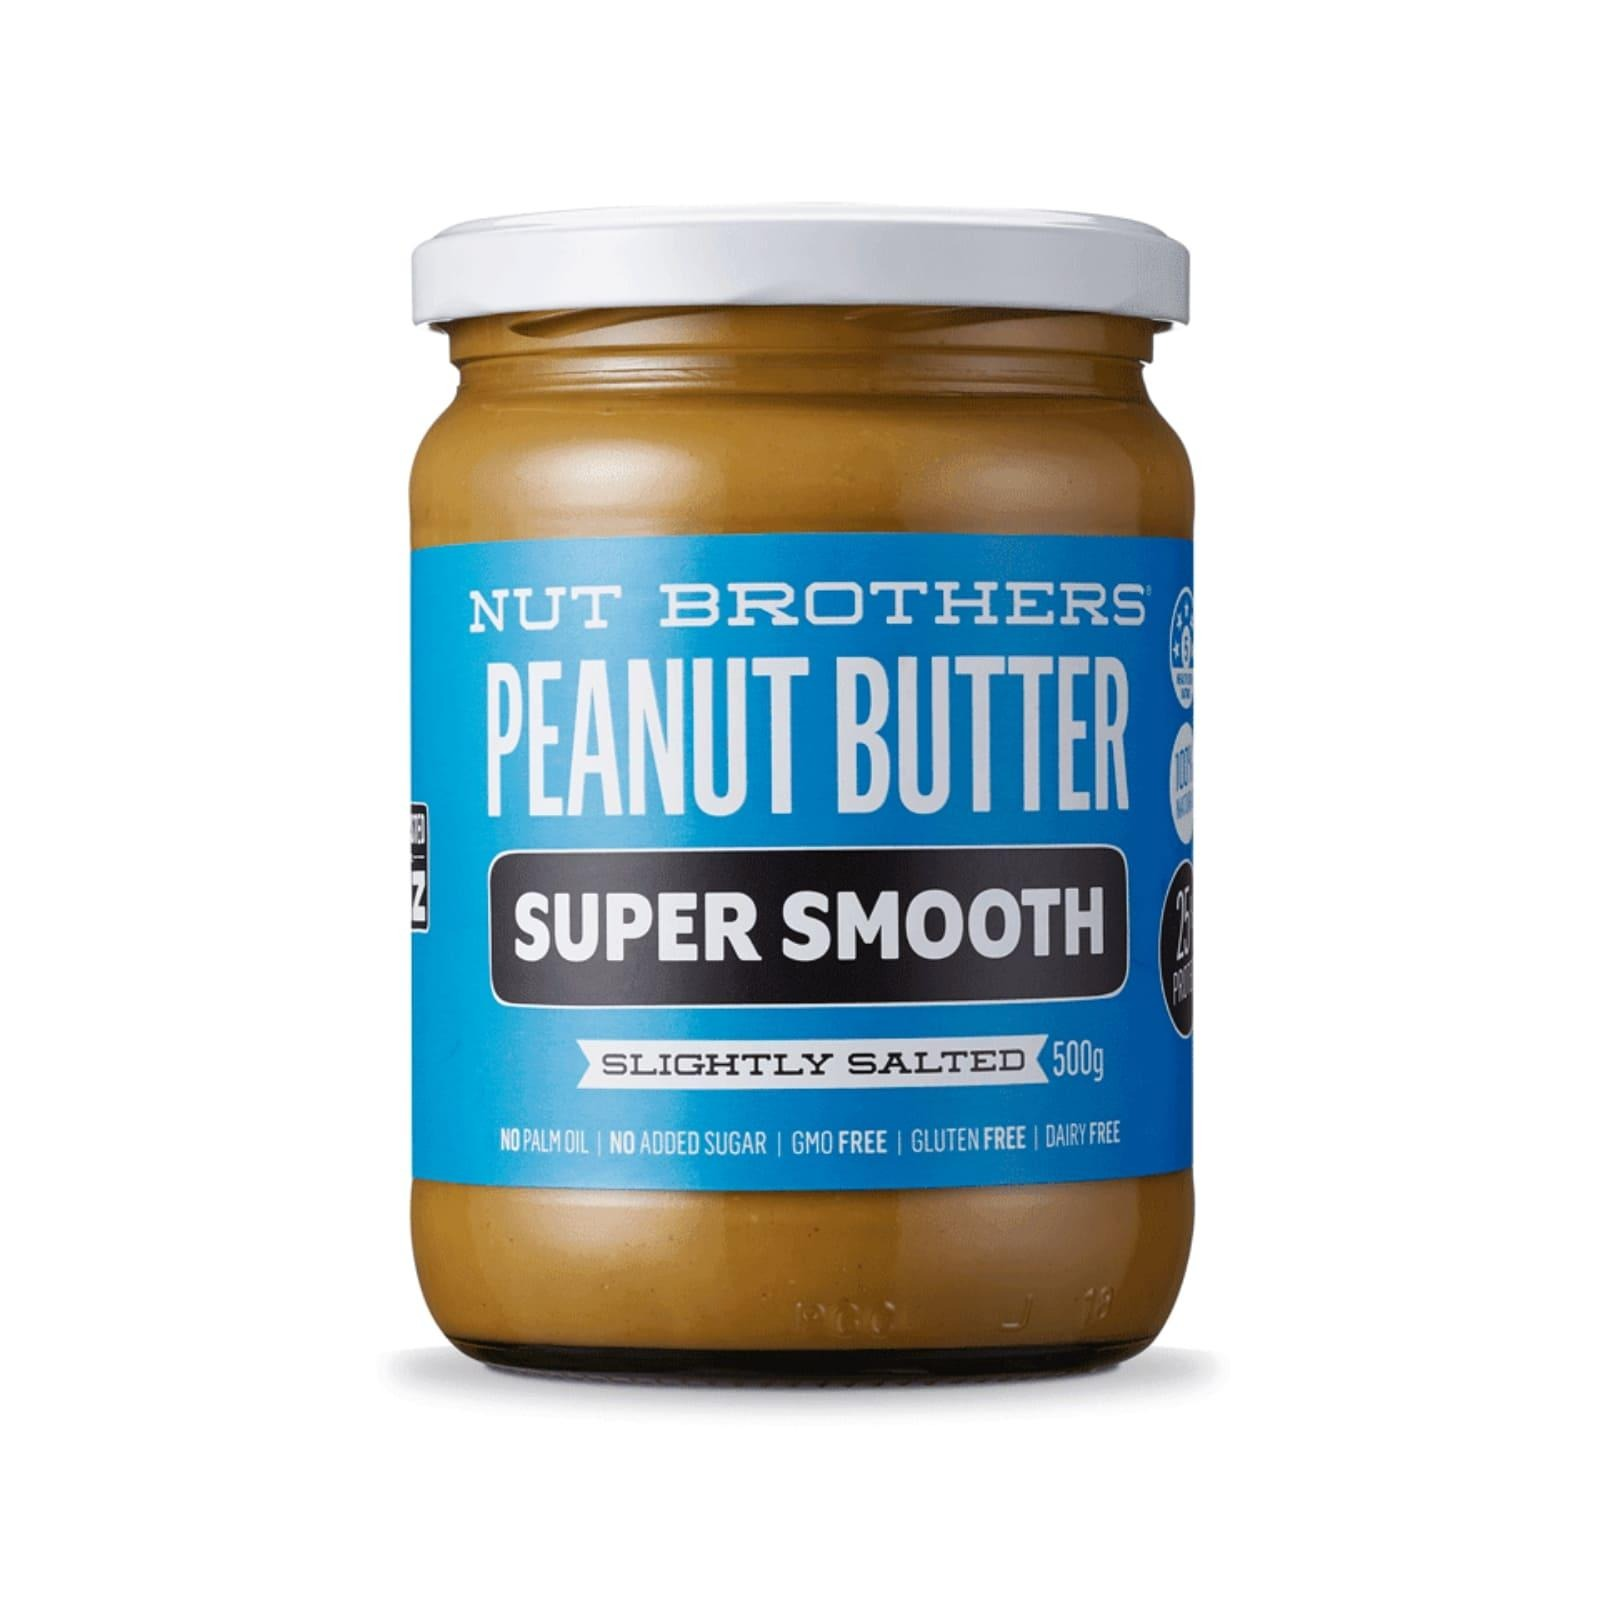 NUT BROTHERS Peanut Butter Super Smooth 500G